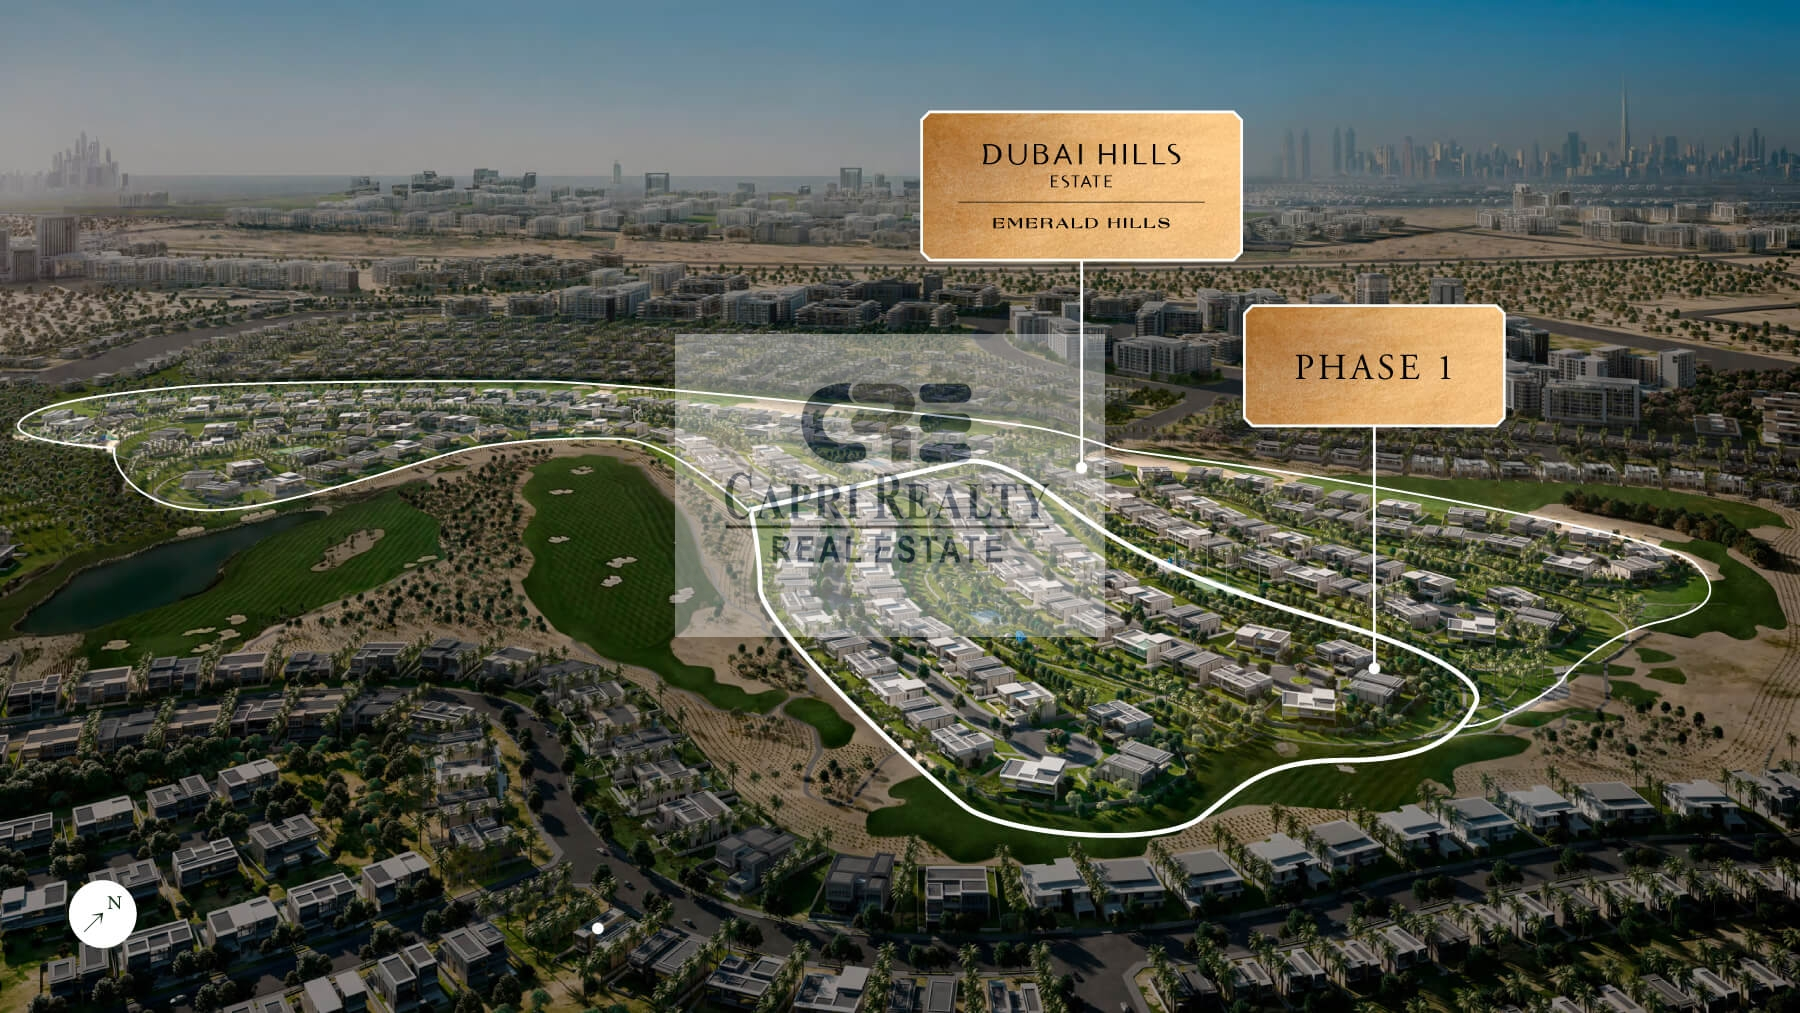 Pay in 5 years| Independent villa on golf course by EMAAR